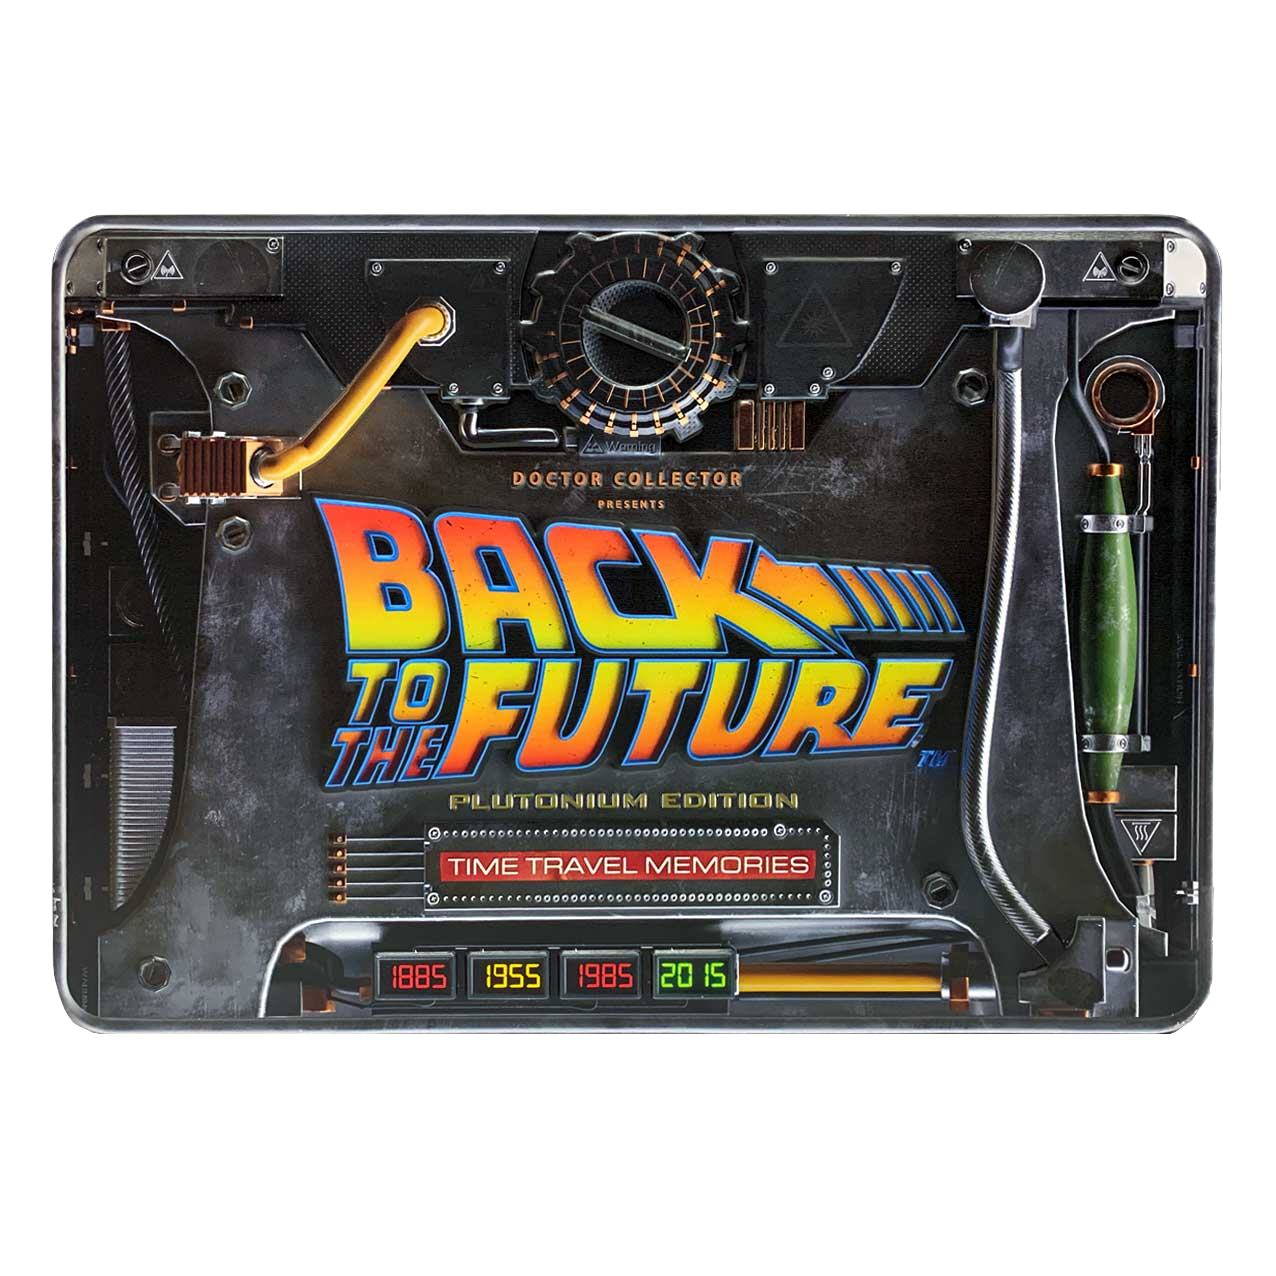 doctor-collector-back-to-the-future-time-travel-plutonium-edition-kit-toyslife